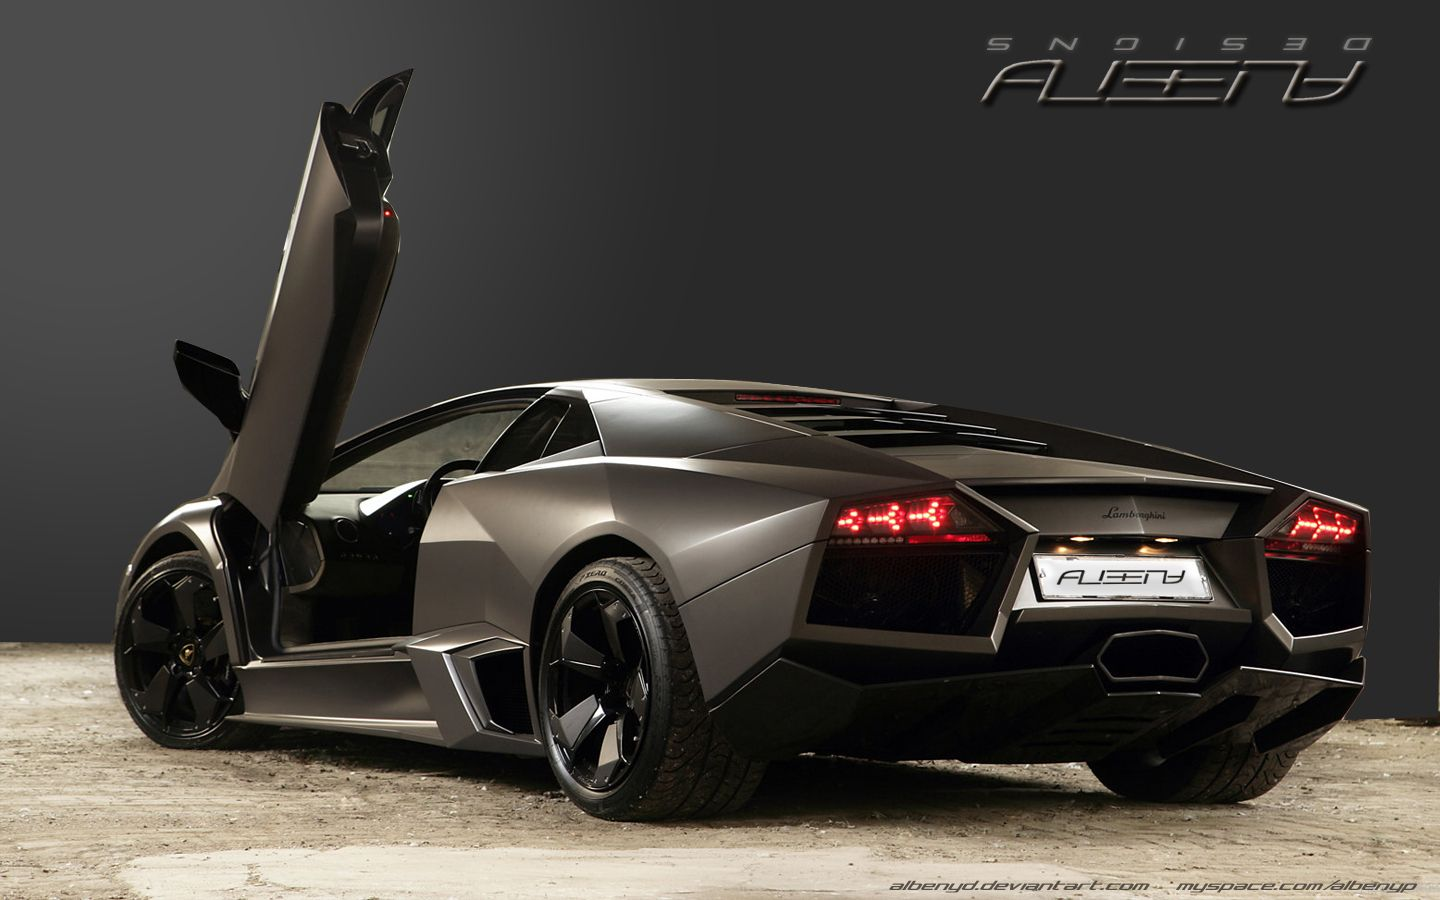 Lamborghini Cars | Lamborghini Car Wallpapers HD | Nice Wallpapers